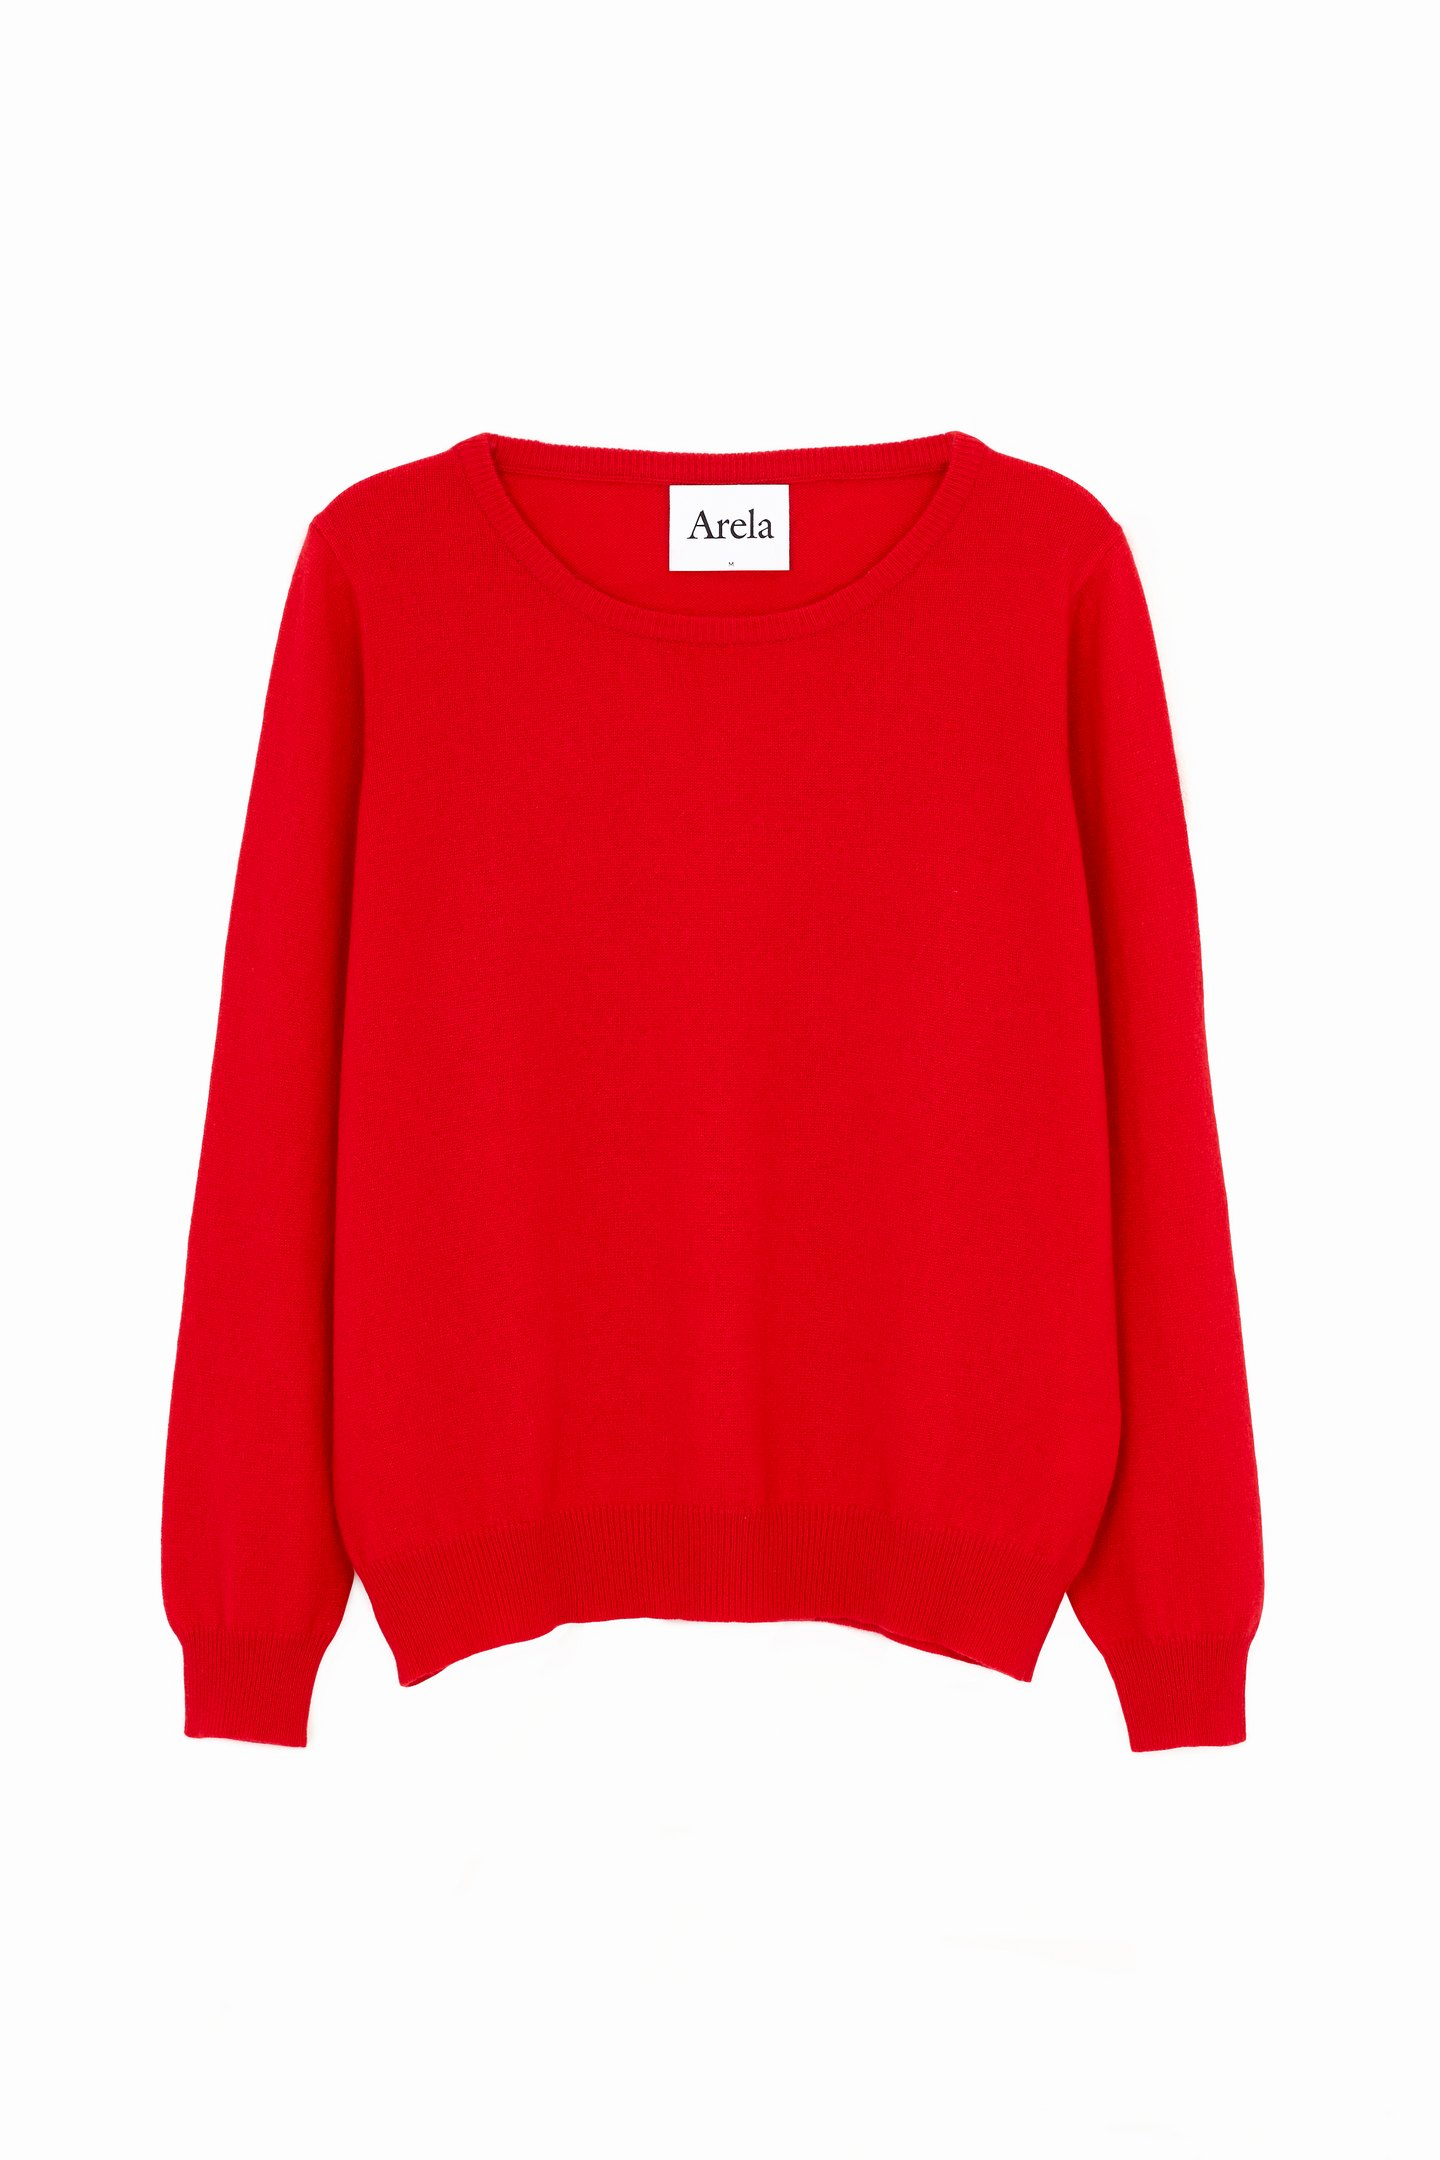 Arela sweater